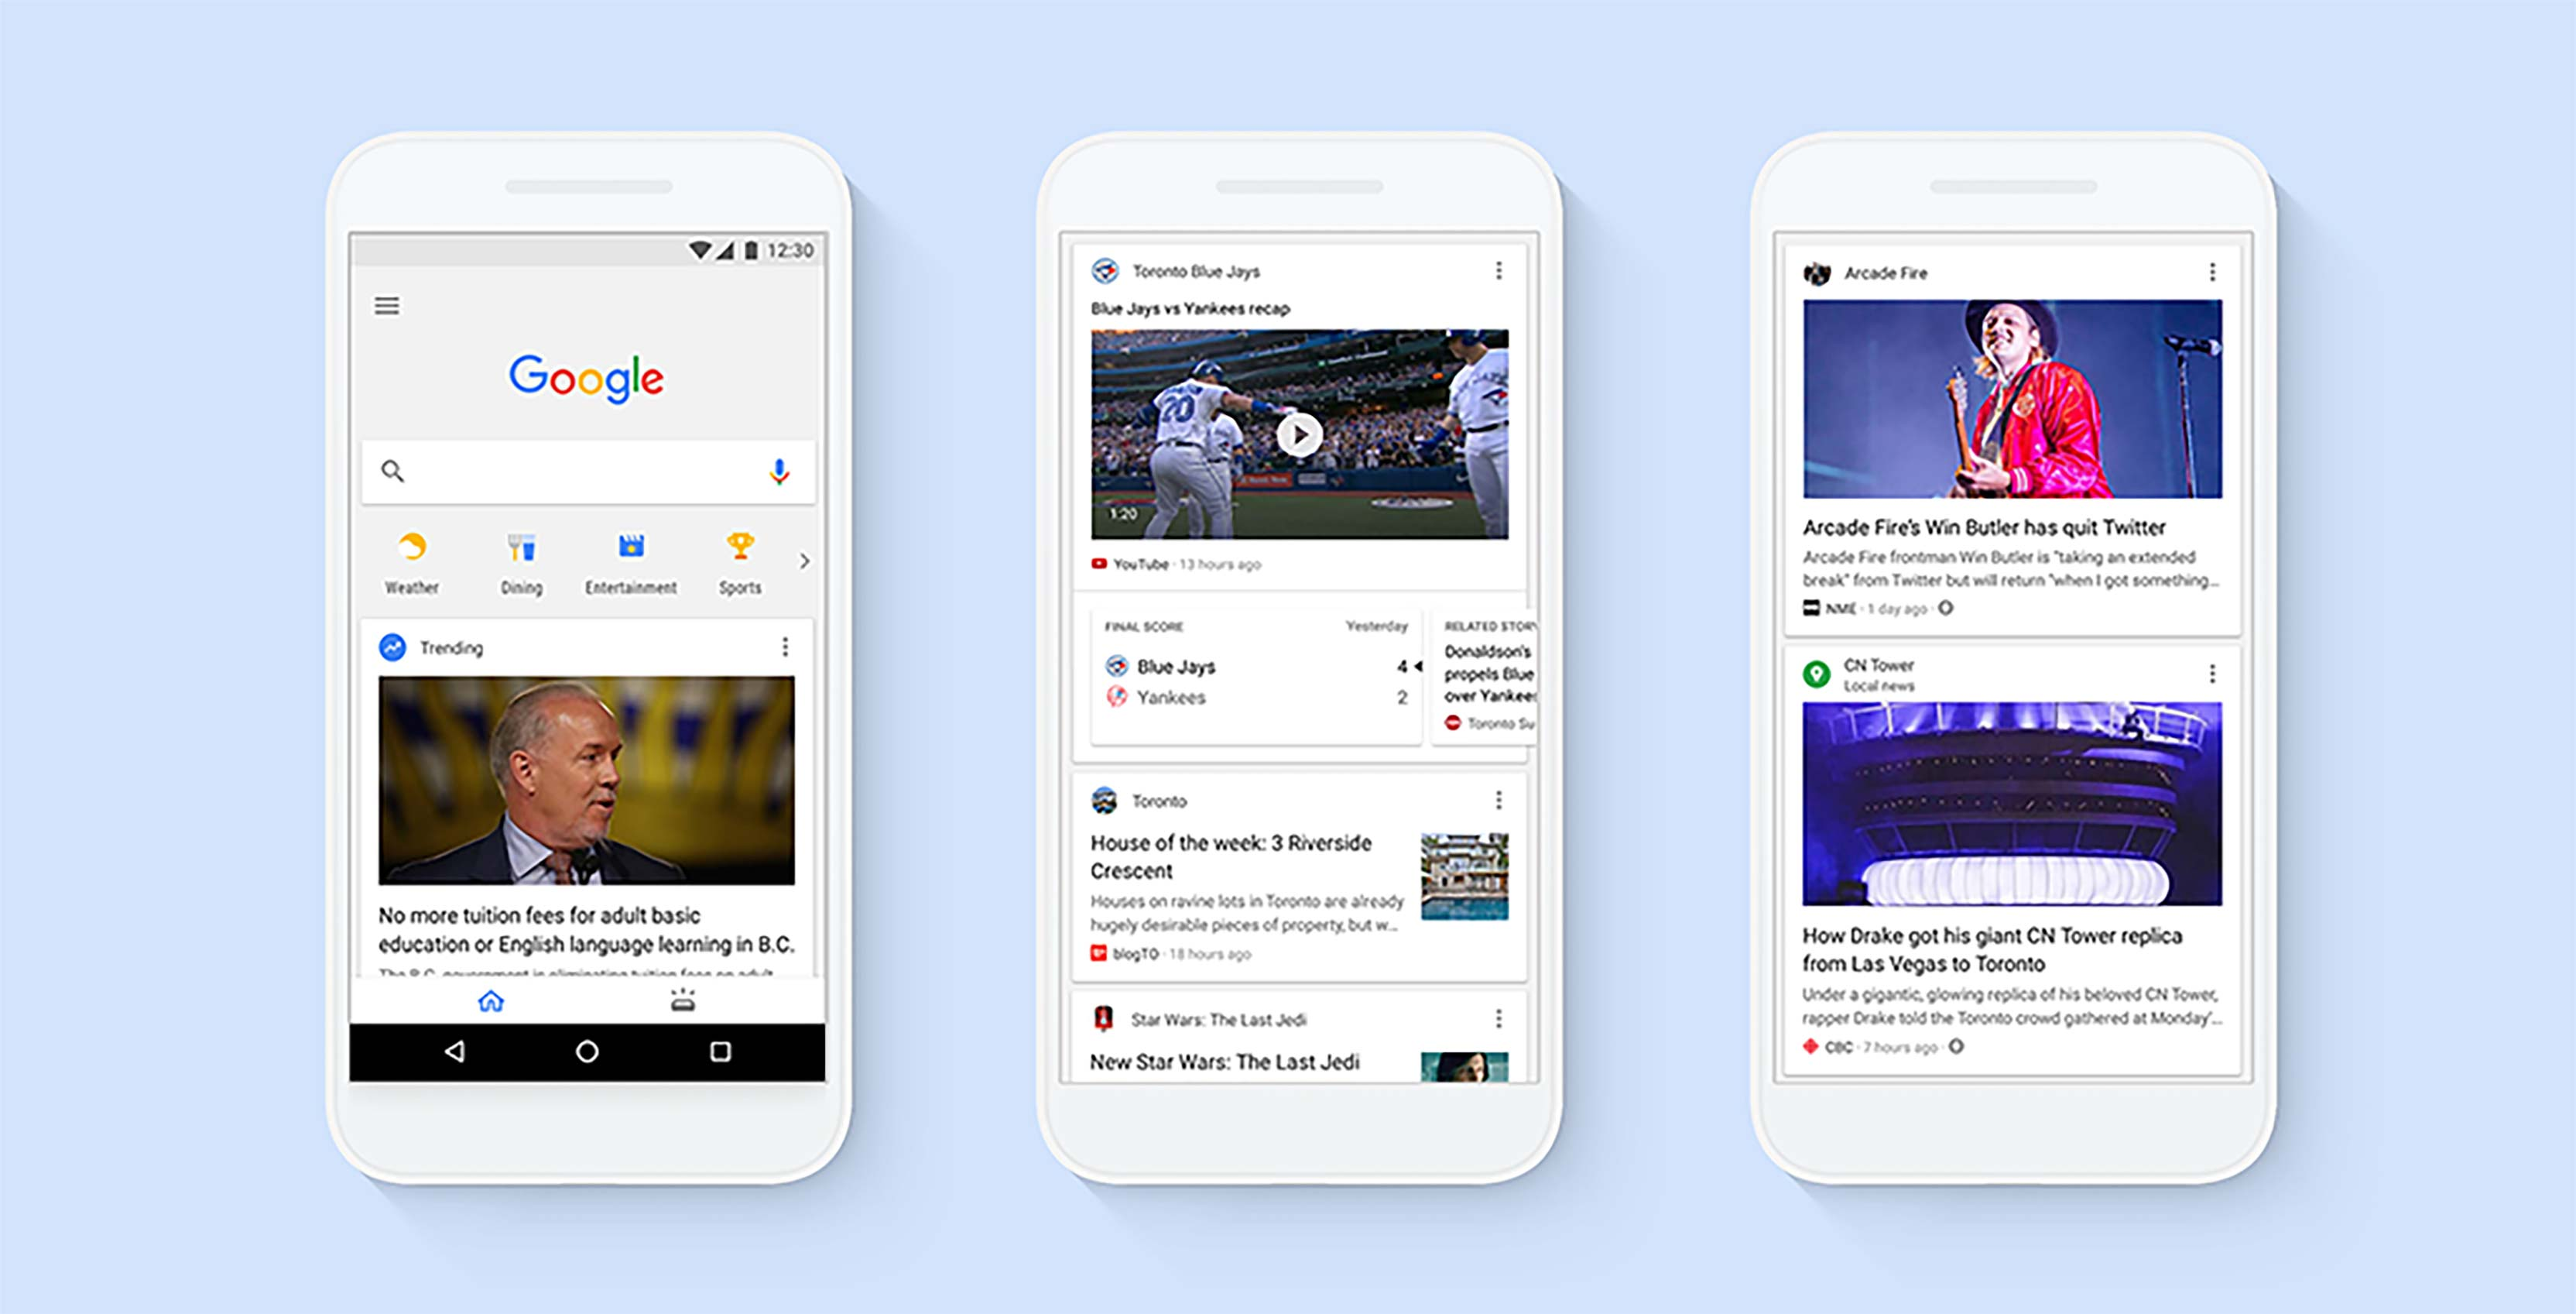 Google Feed example